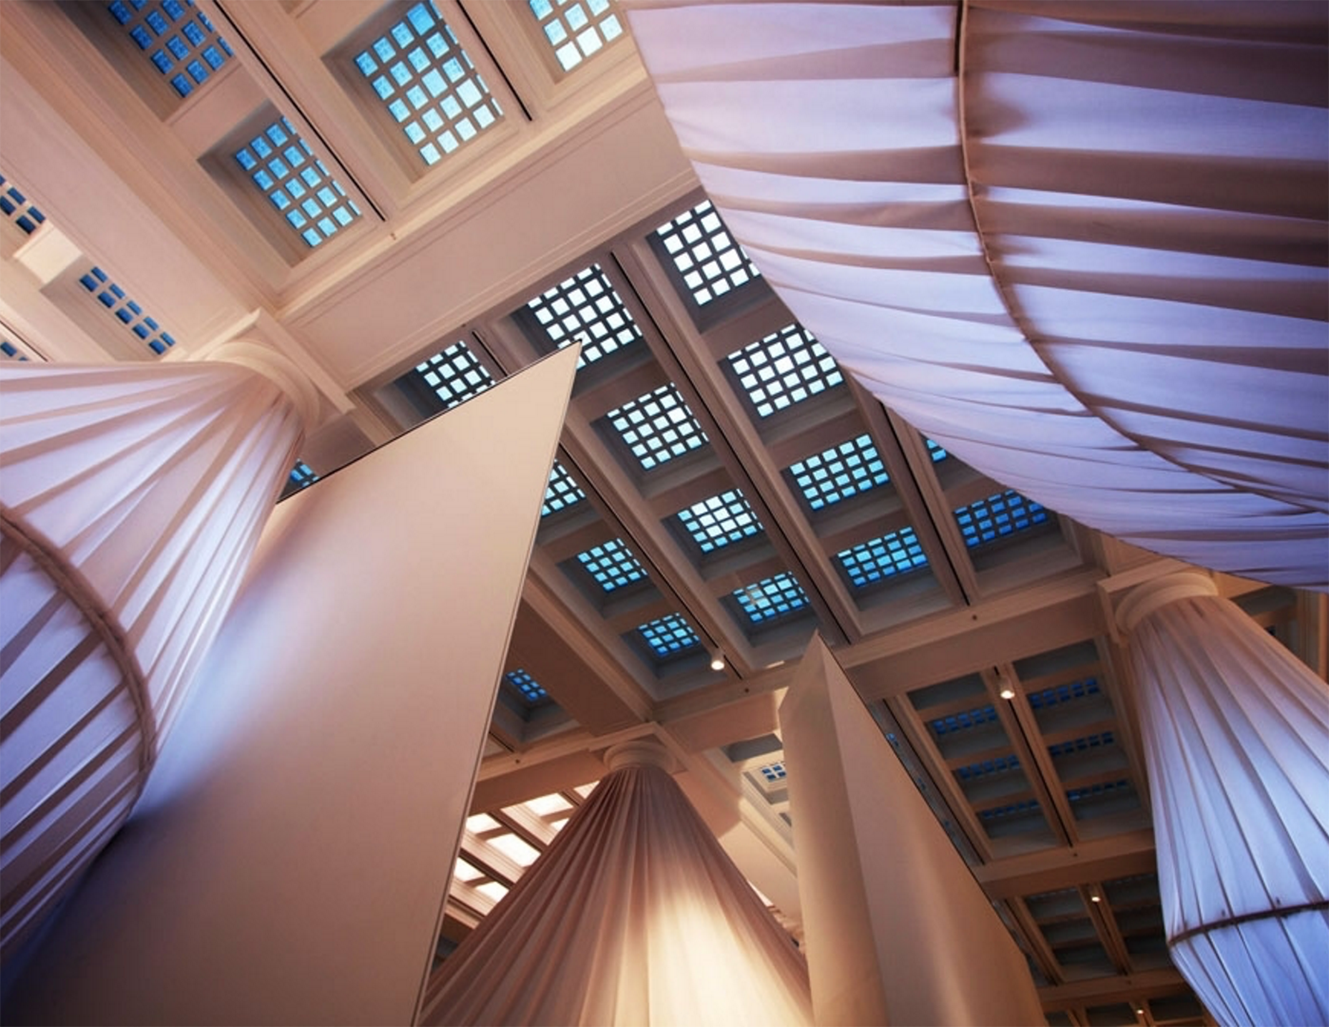 Shot looking up at reOrder art installation at the Brooklyn Museum featuring Sunbrella fabrics